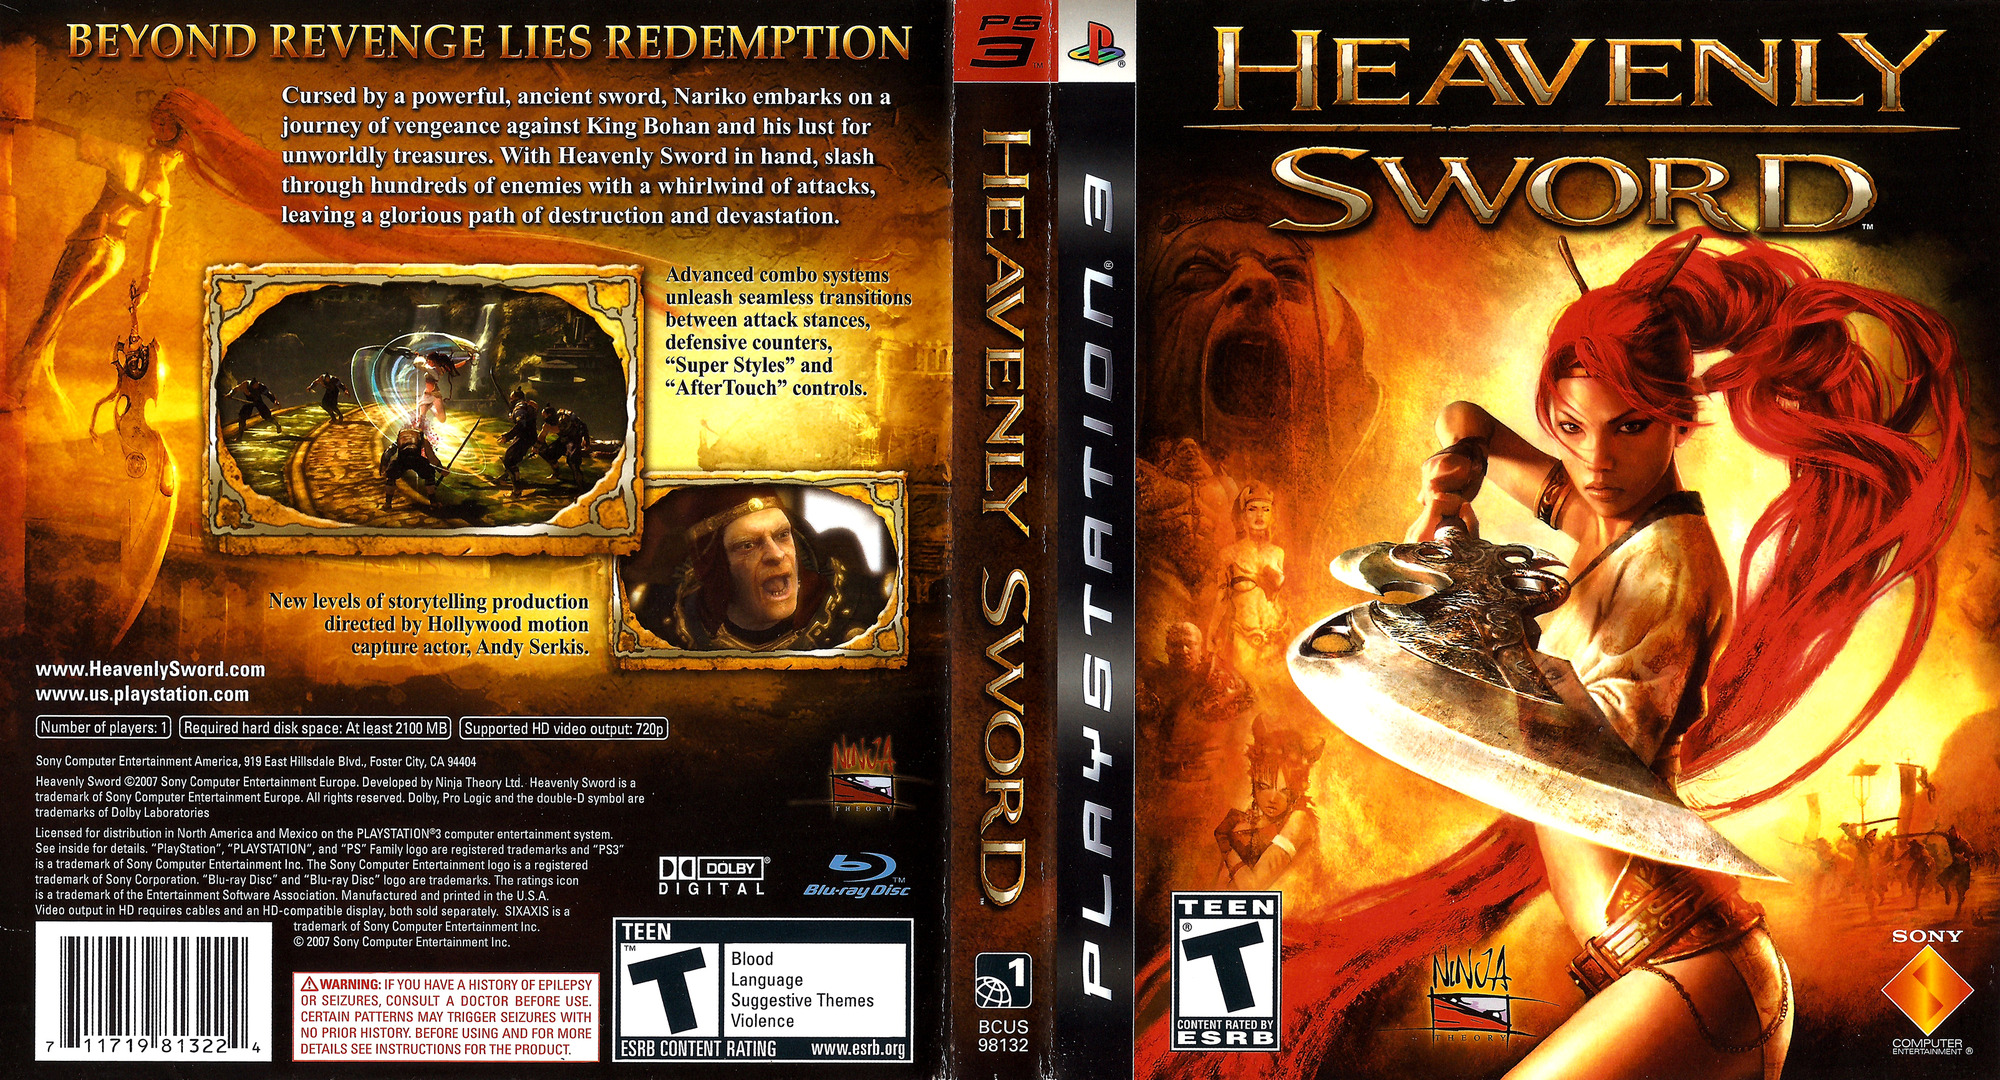 Heavenly Sword PS3 coverfullHQ (BCUS98132)